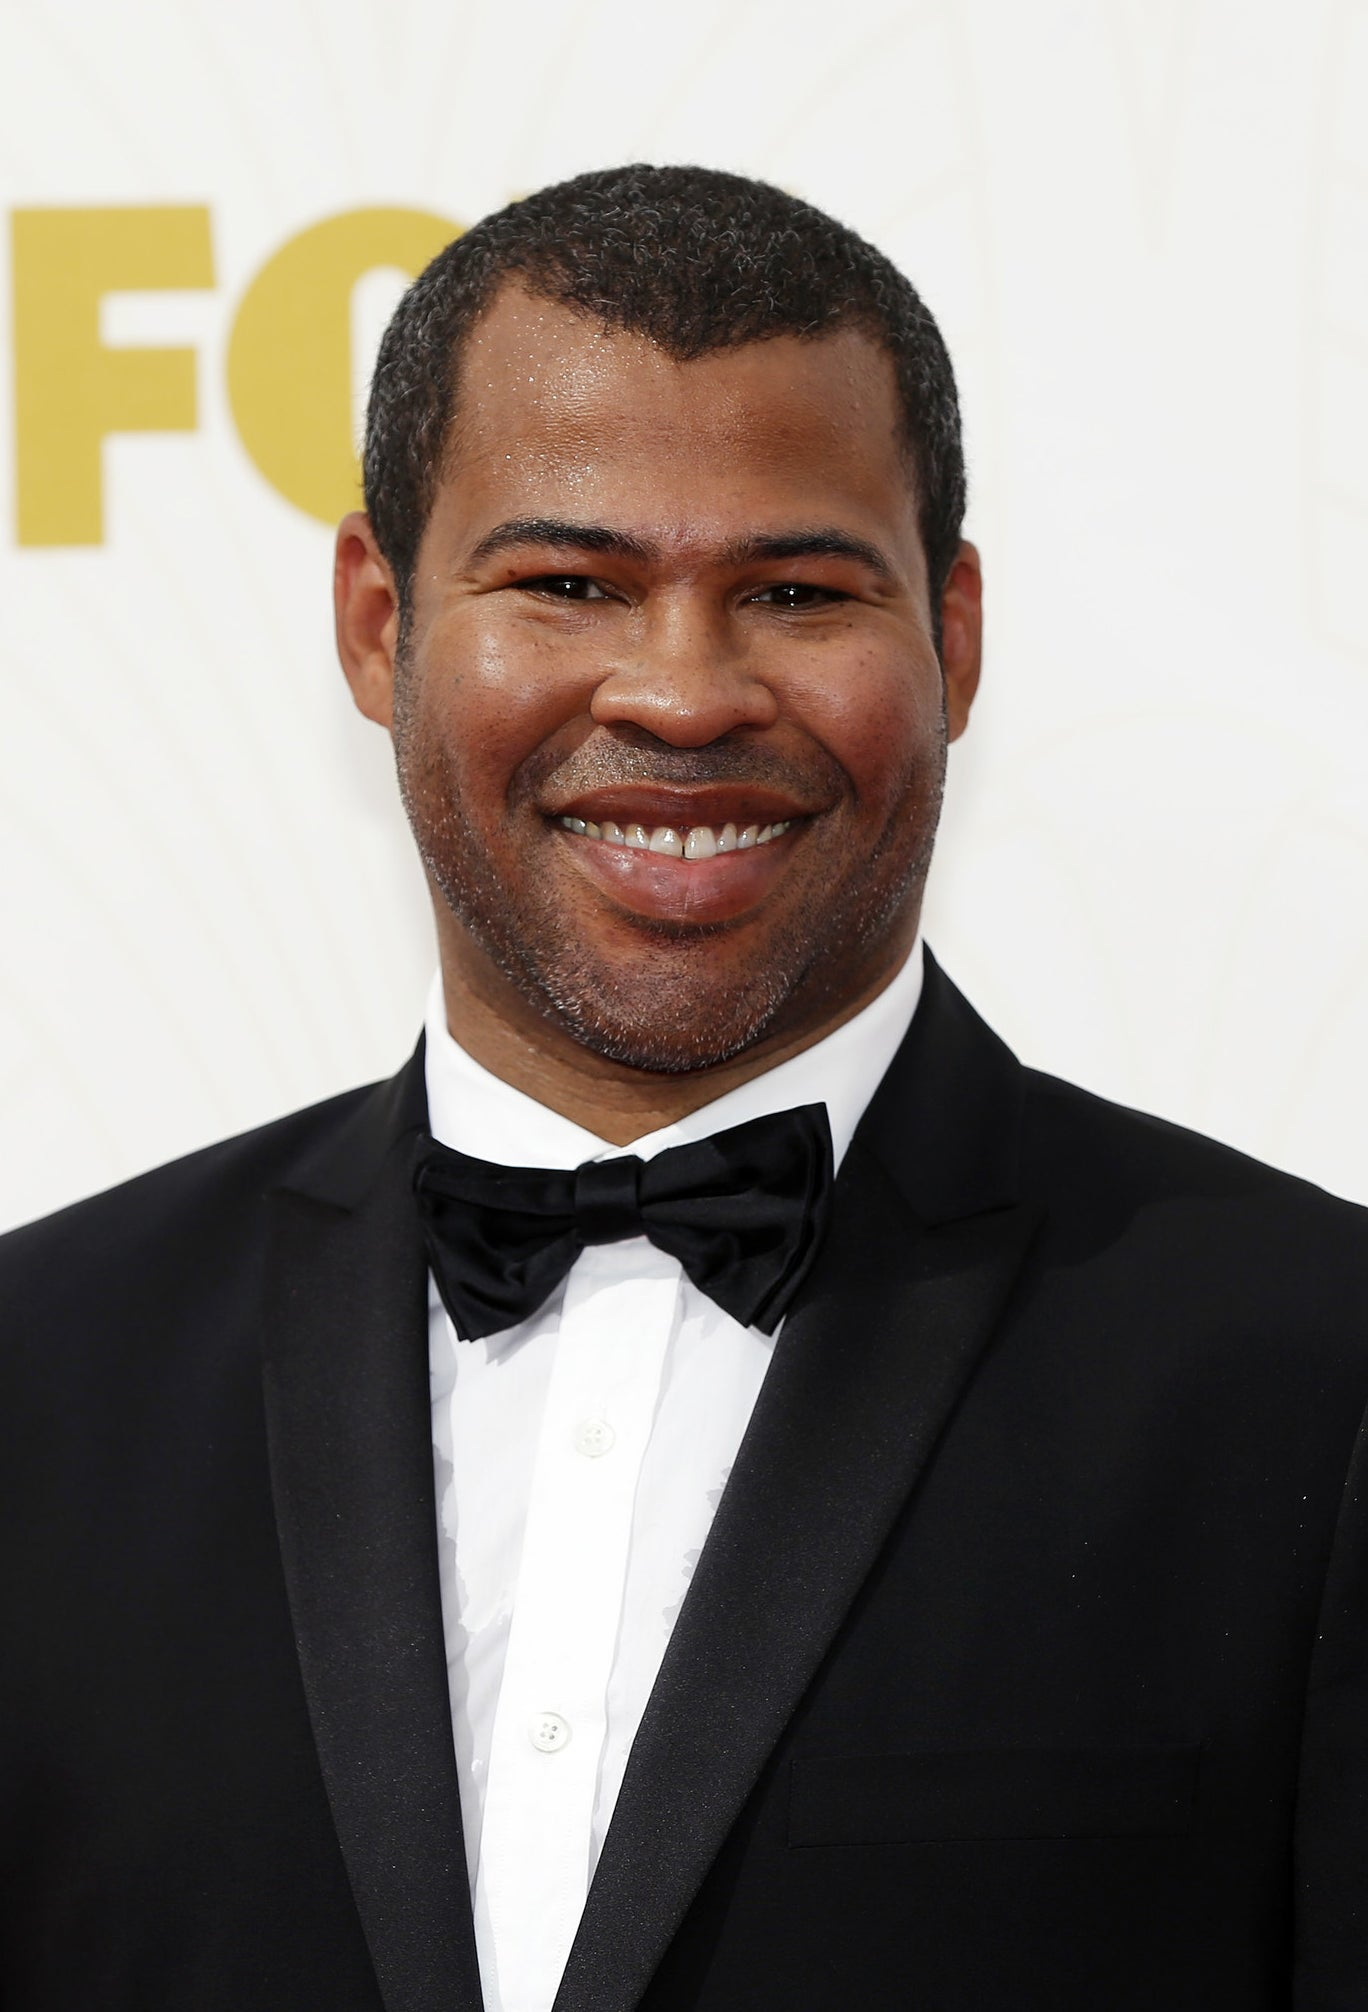 Jordan Peele smiling, wearing a black tux with a bow-tie